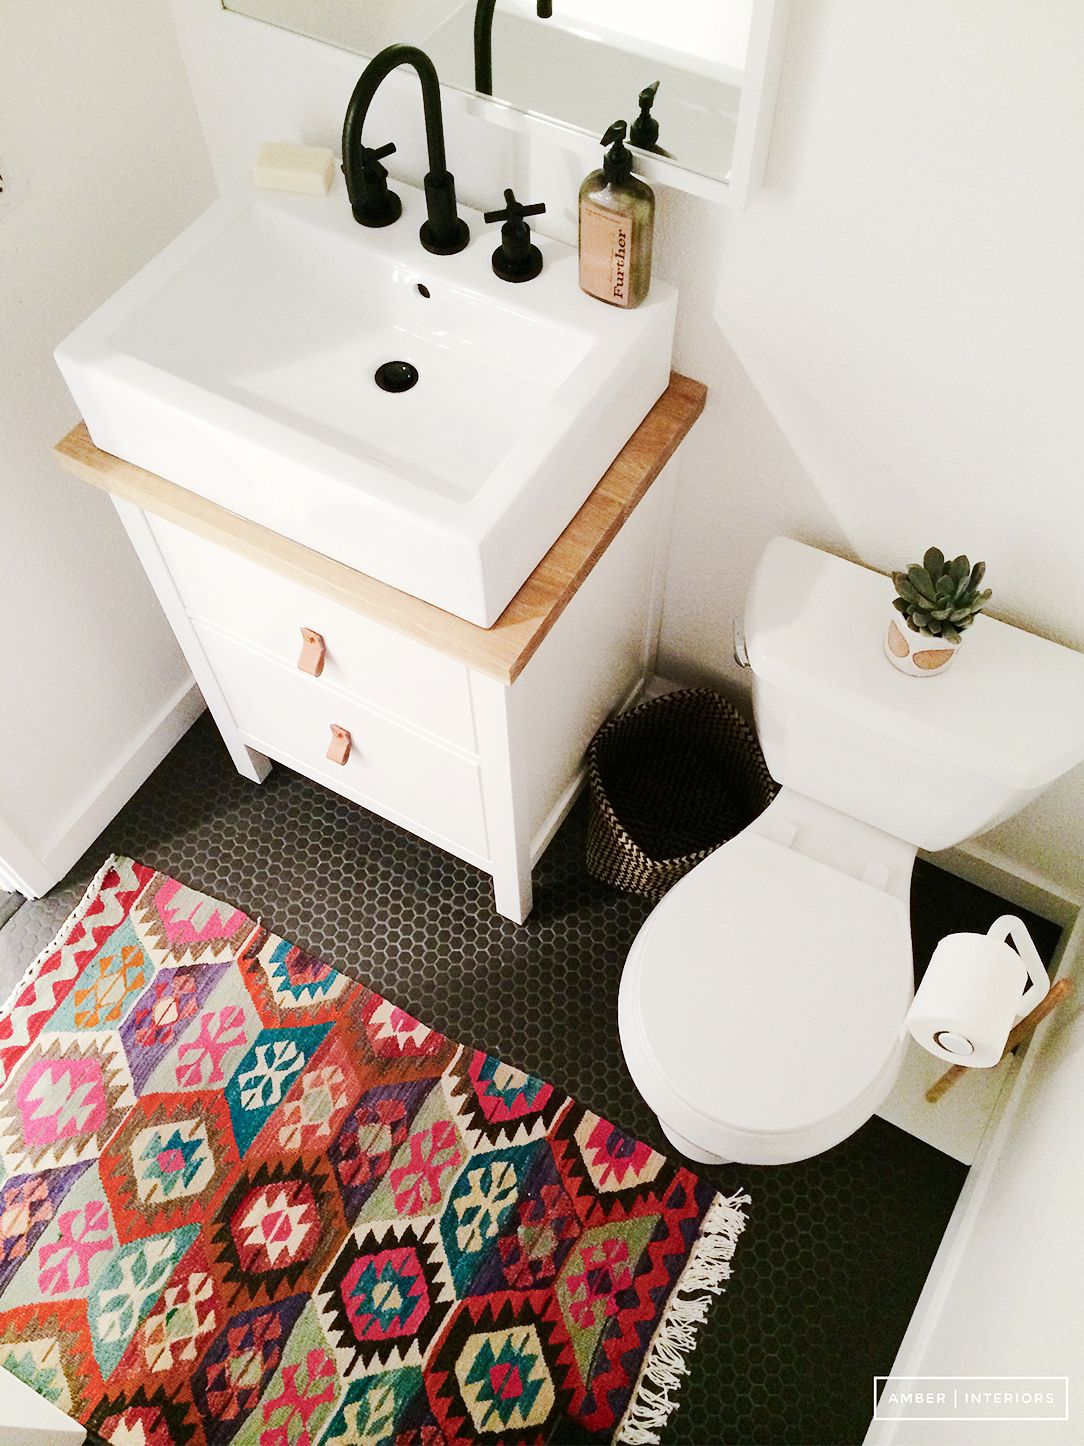 Teppiche Wc Trend Alert Persian Rugs In The Bathroom Idee Haus Pinterest